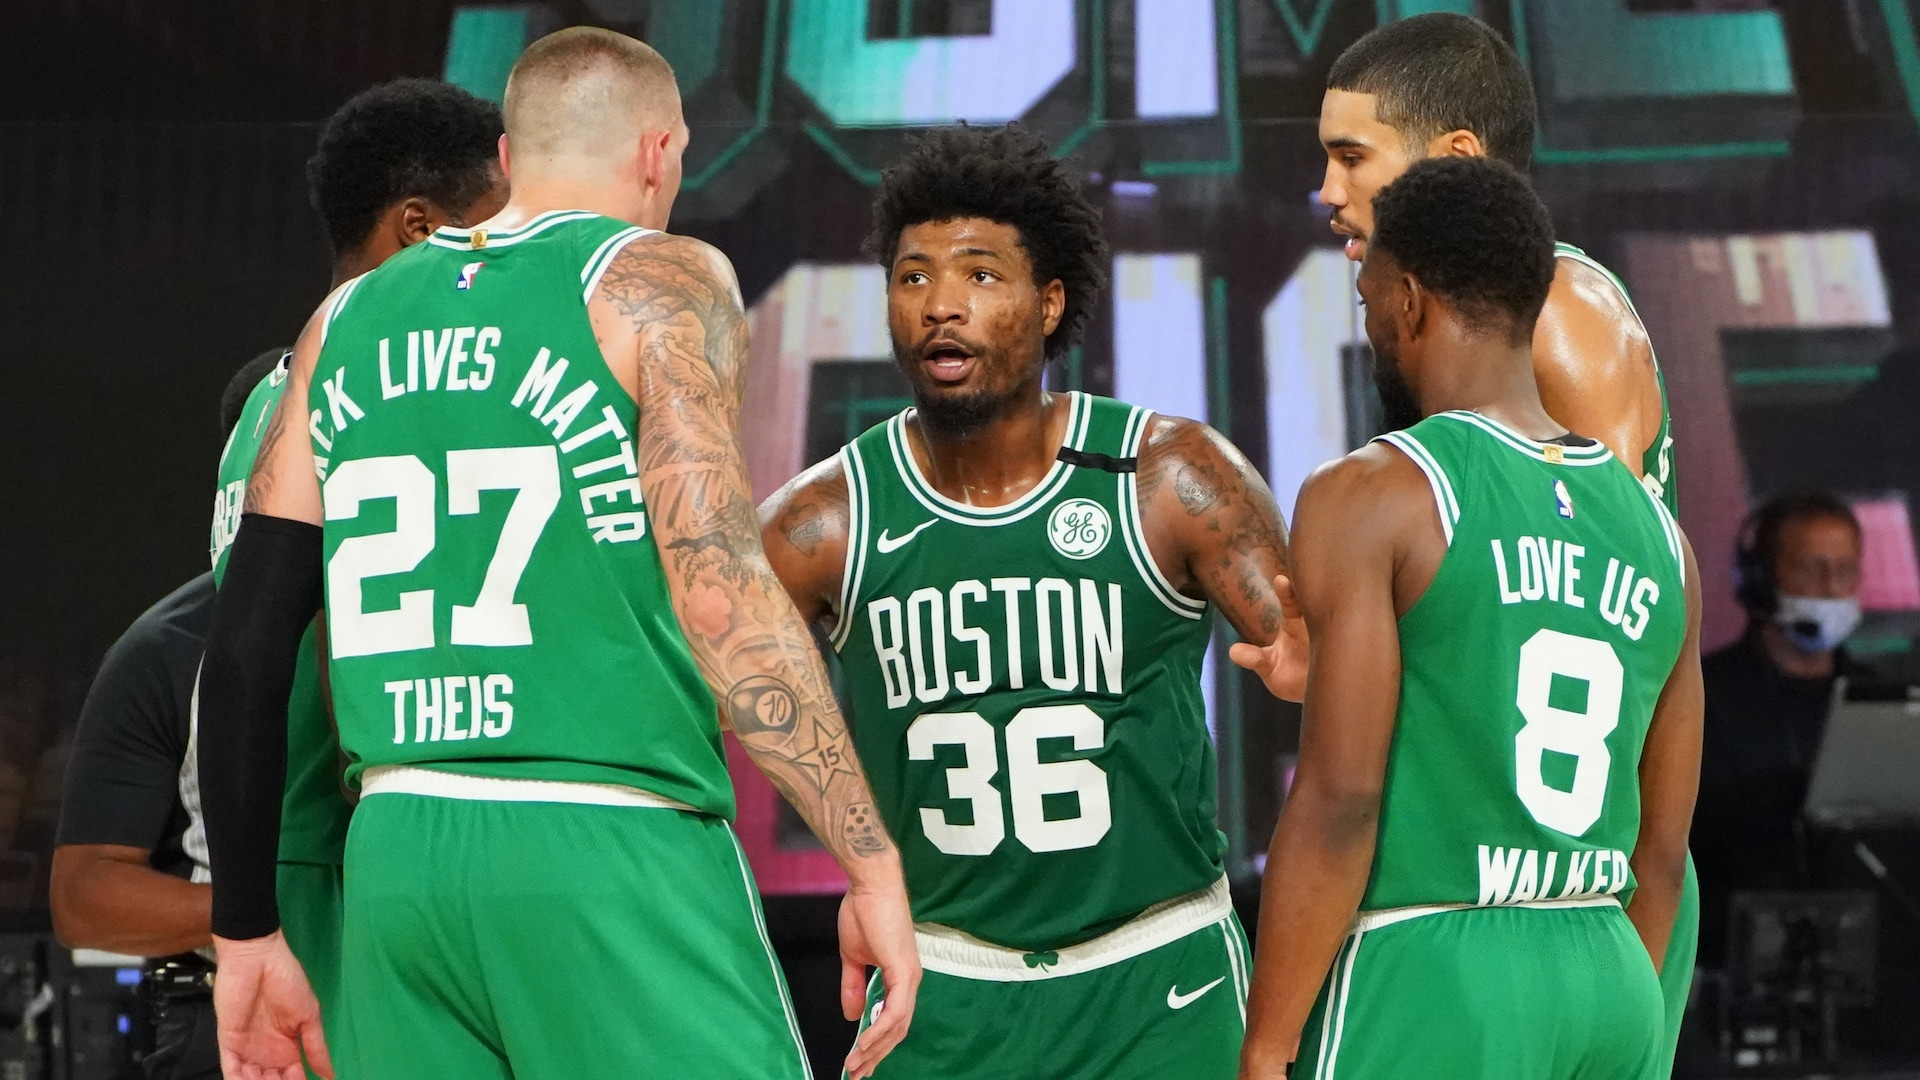 Marcus Smart fined $15,000 for criticizing officials